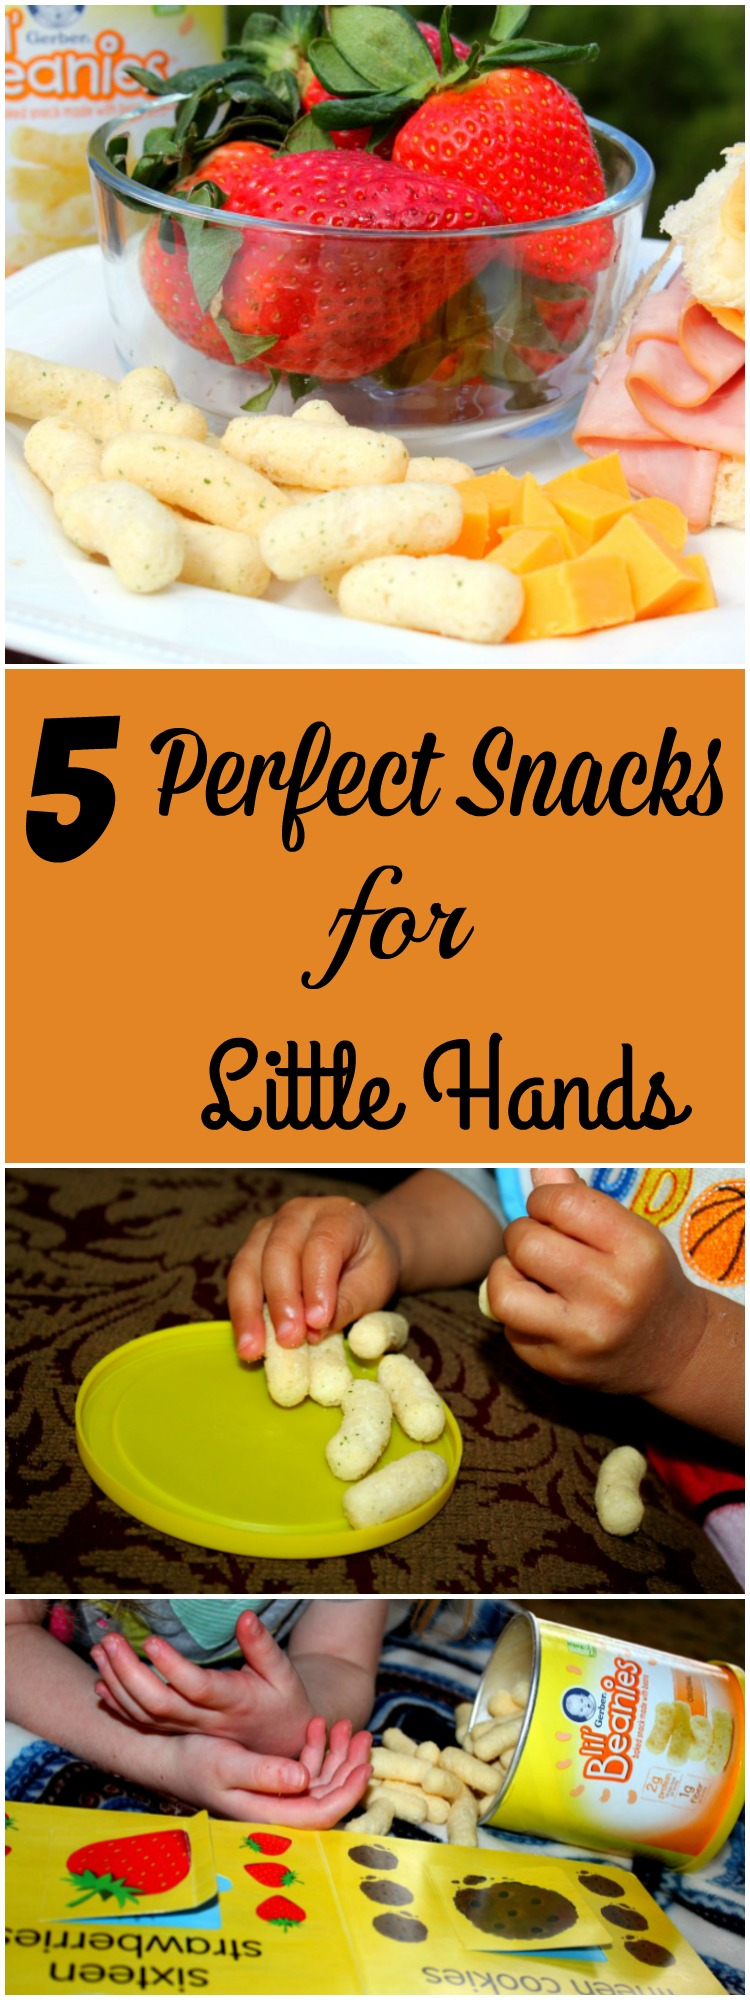 5 Perfect Snacks for Lil Hands